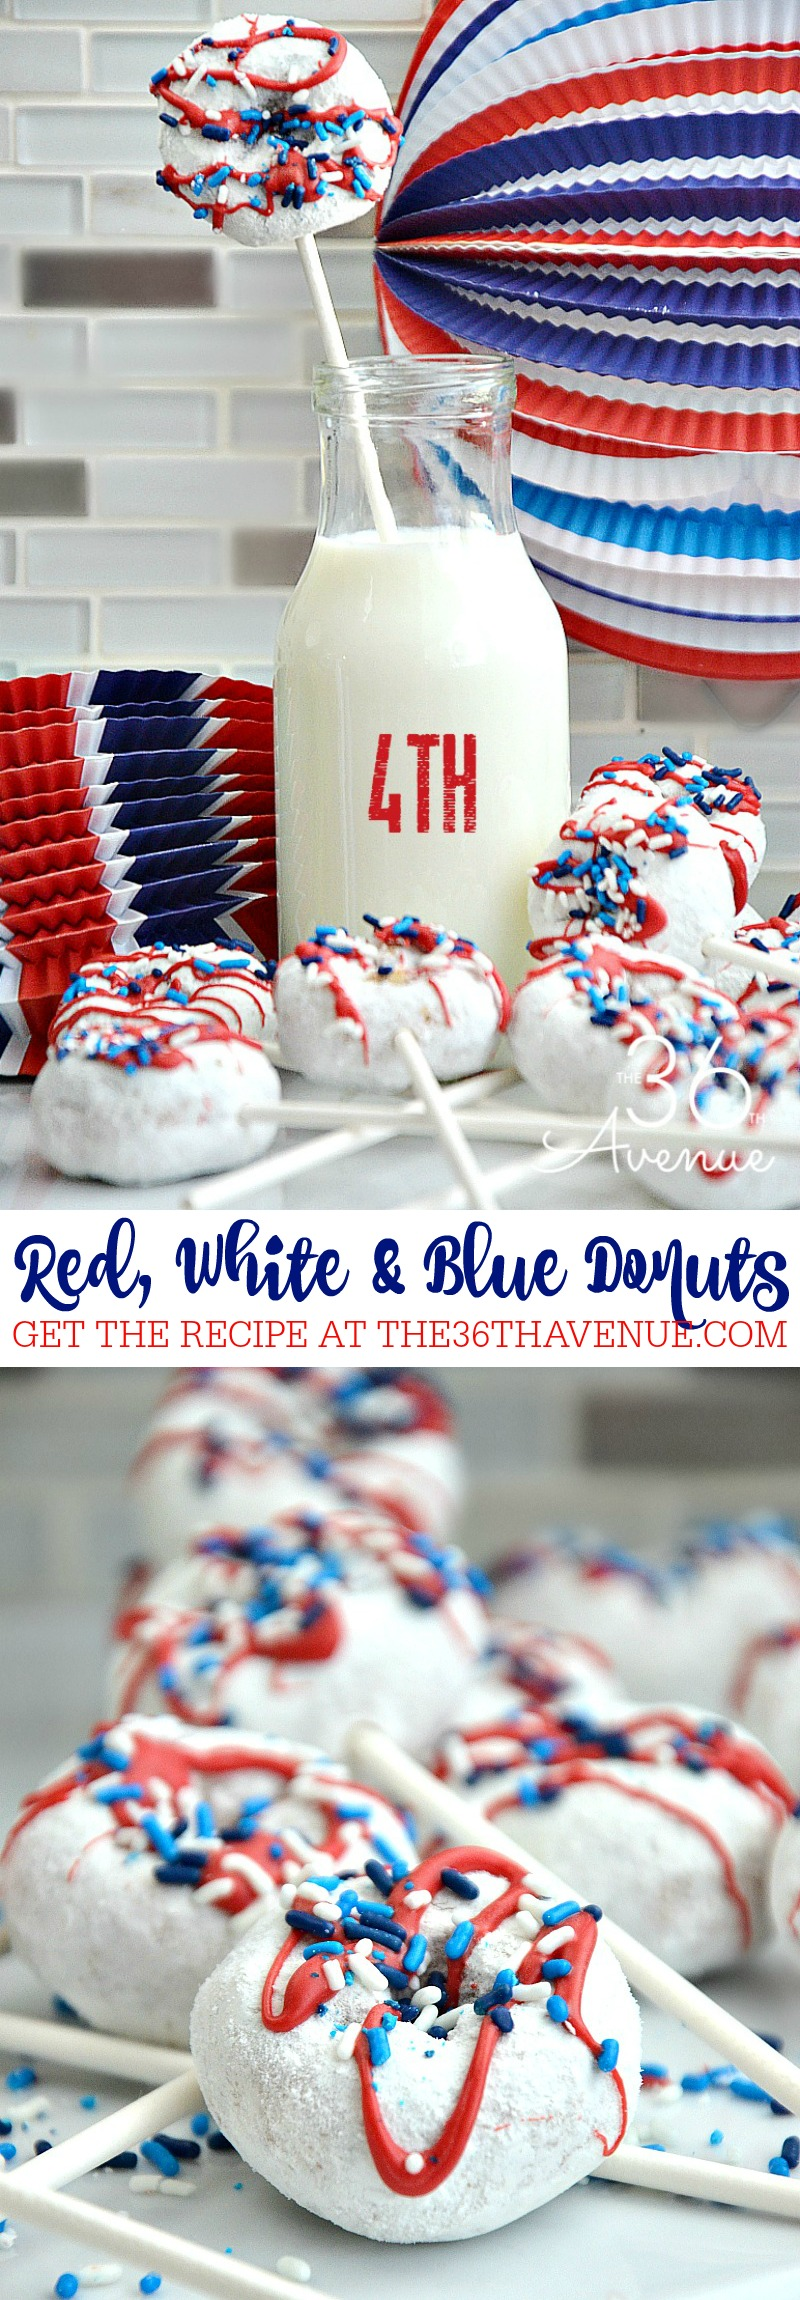 Make these easy and delicious doughnut pops to celebrate the Fourth of July. You need just a few ingredients and they are perfect for a patriotic breakfast!